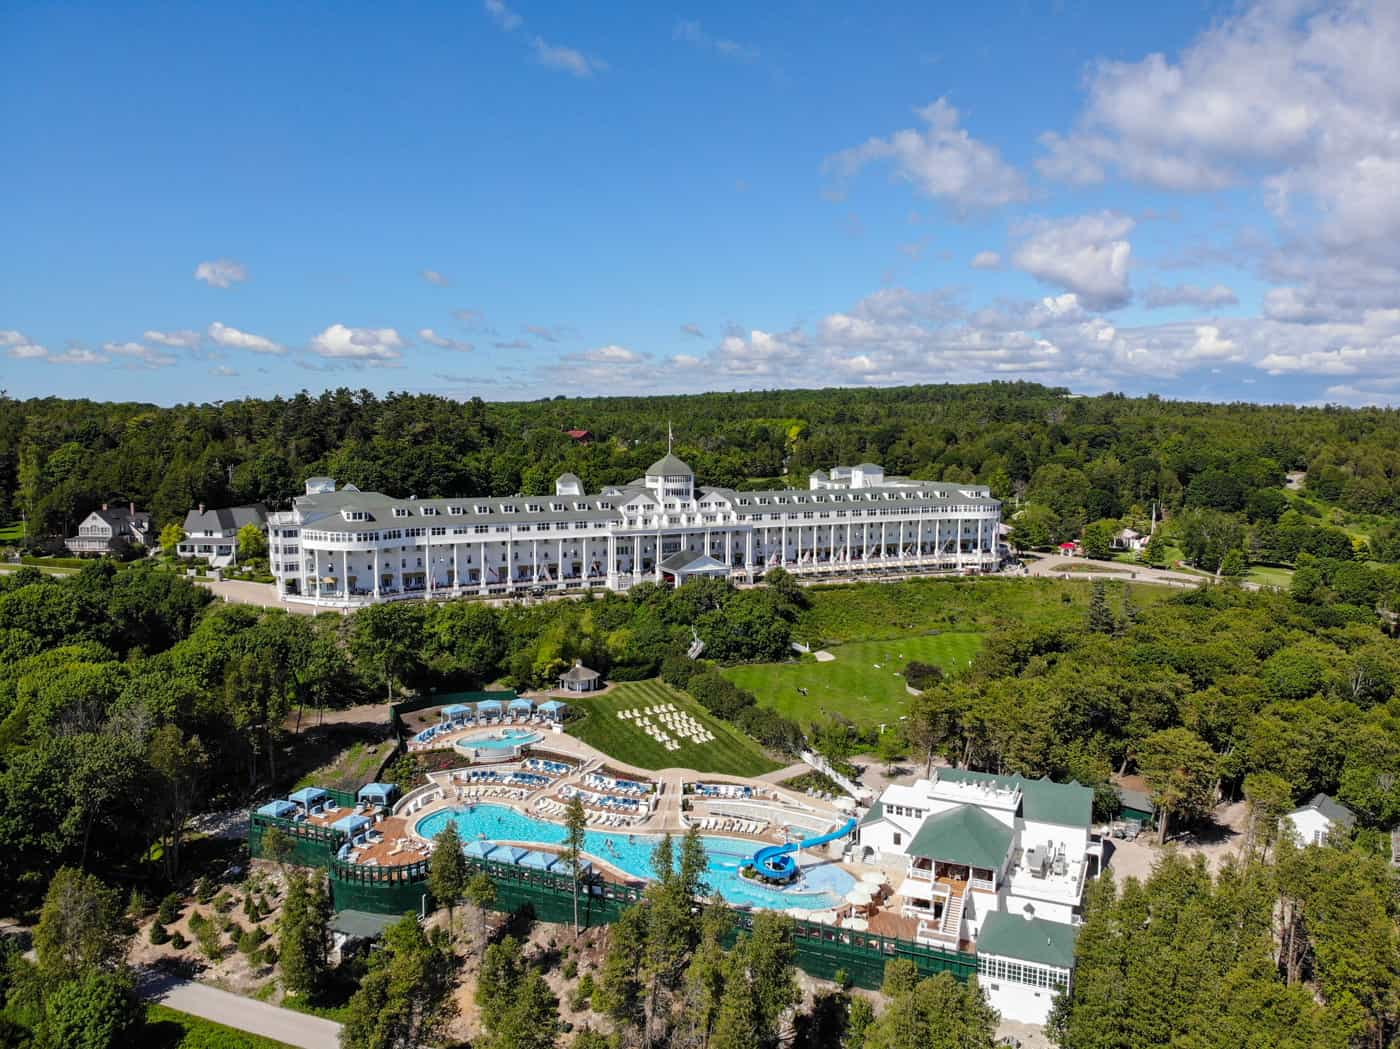 Aerial view of the Grand Hotel and pool on Mackinac Island Michigan